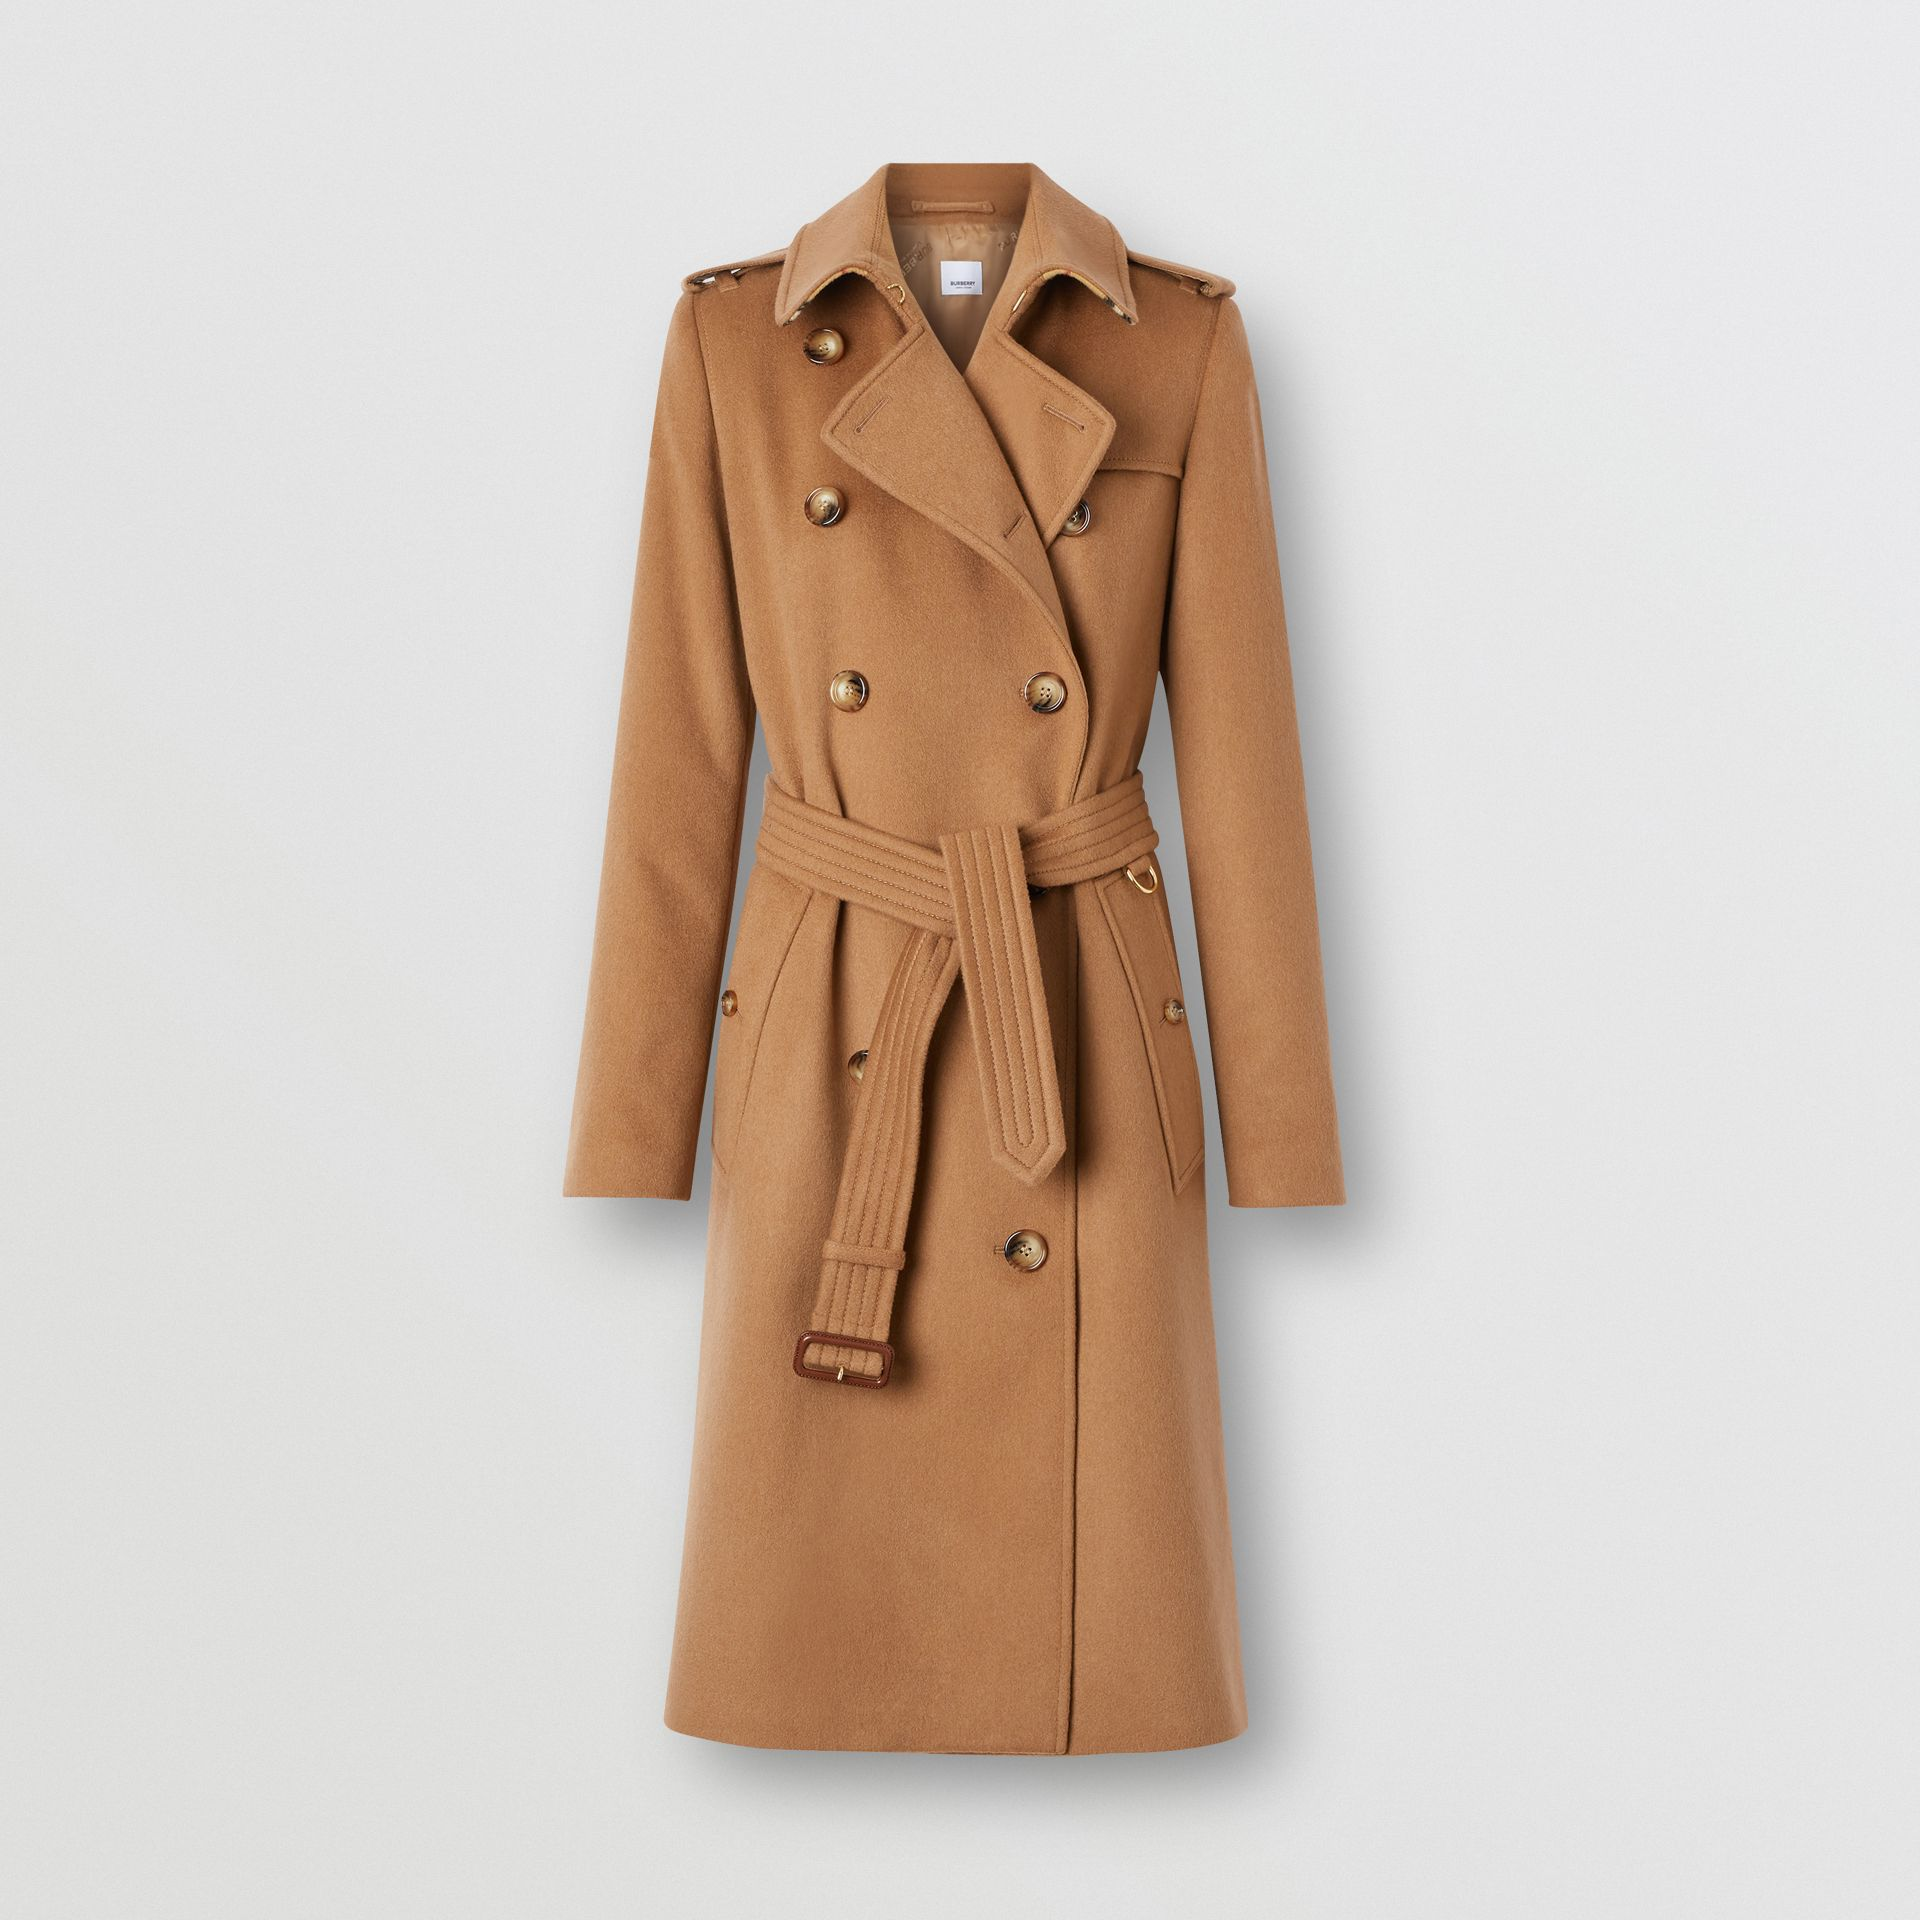 Cashmere Trench Coat in Bronze - Women | Burberry Hong Kong S.A.R. - gallery image 3